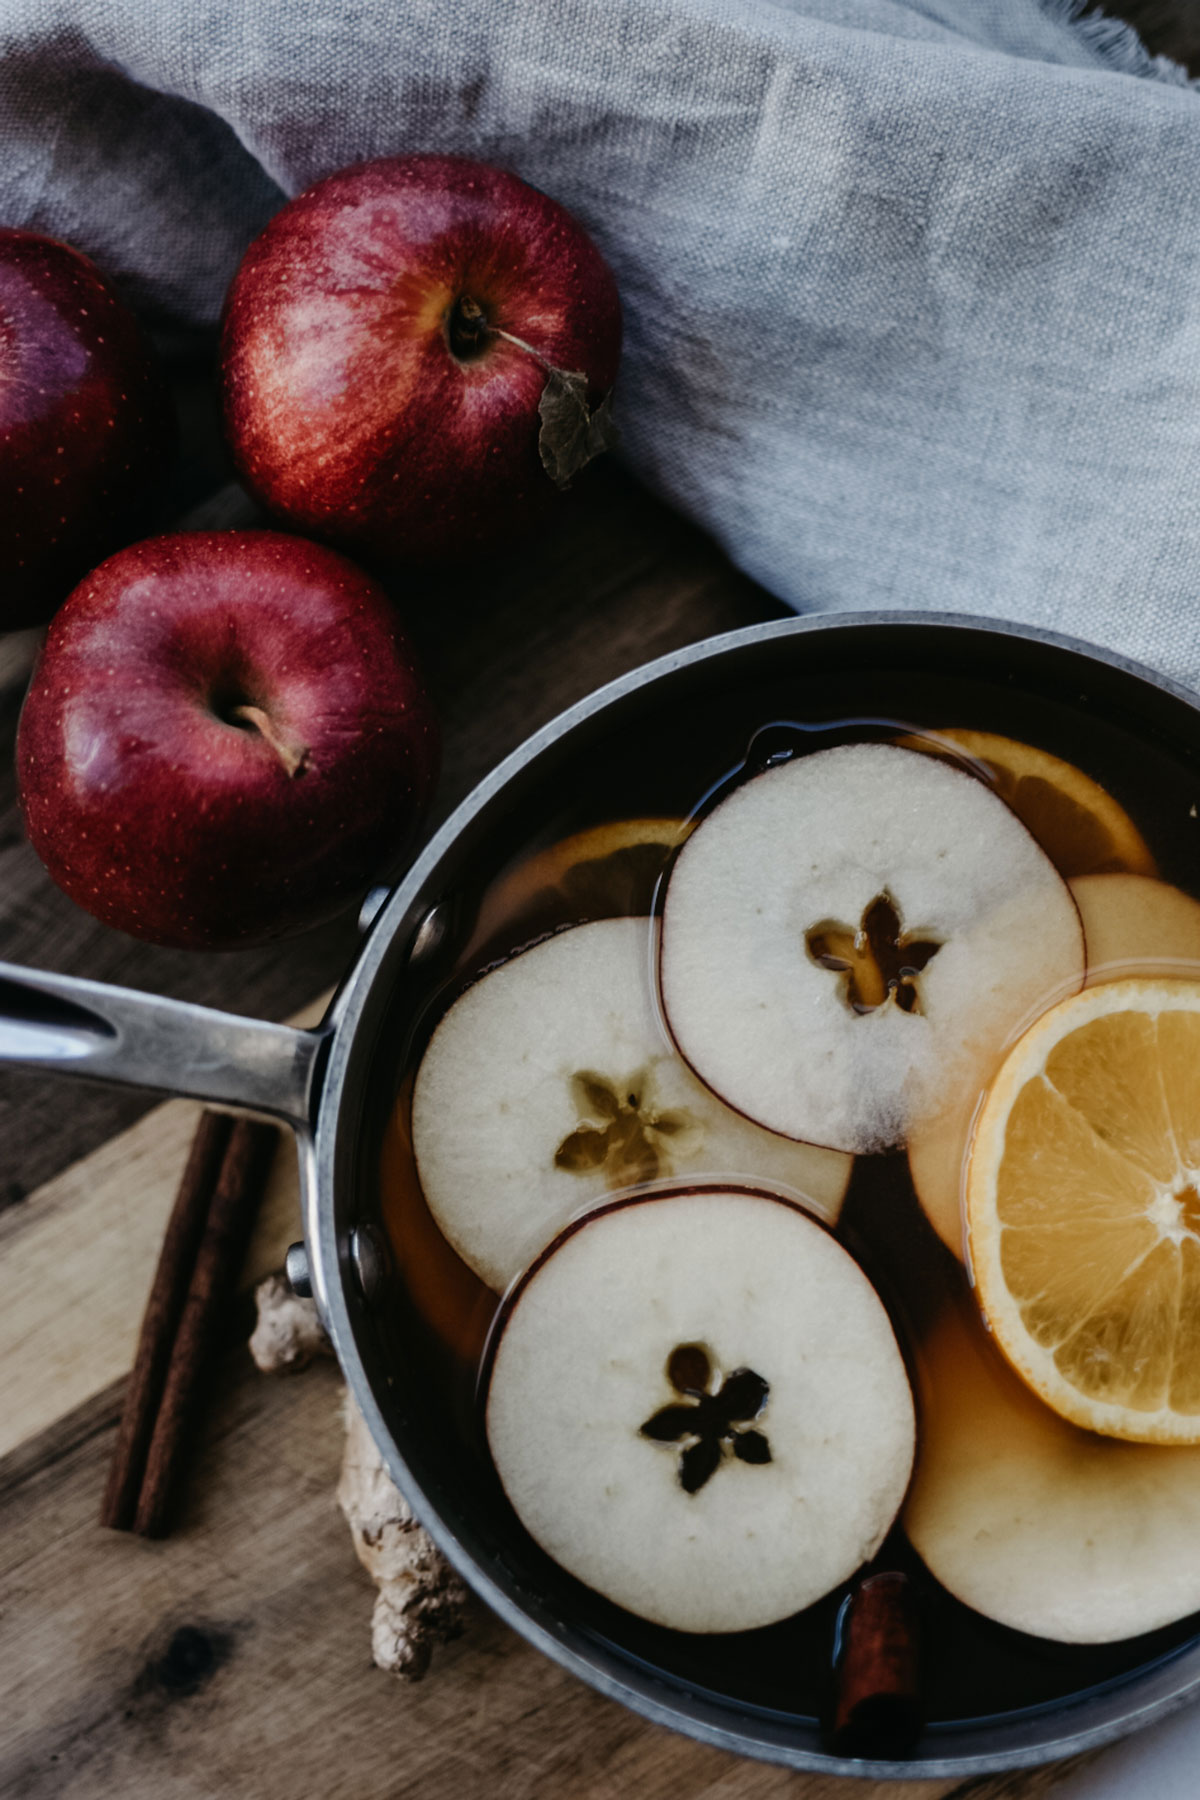 Spiced apple cider on the stovetop